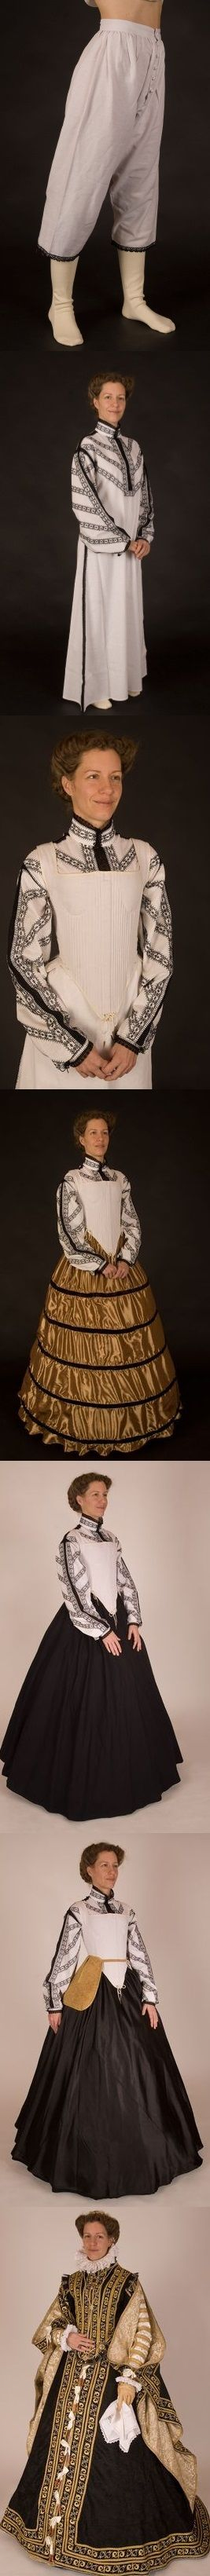 Really lovely reproduction of the Anne of Austria dress as well as a nice visual of all the layers that go into a court gown.